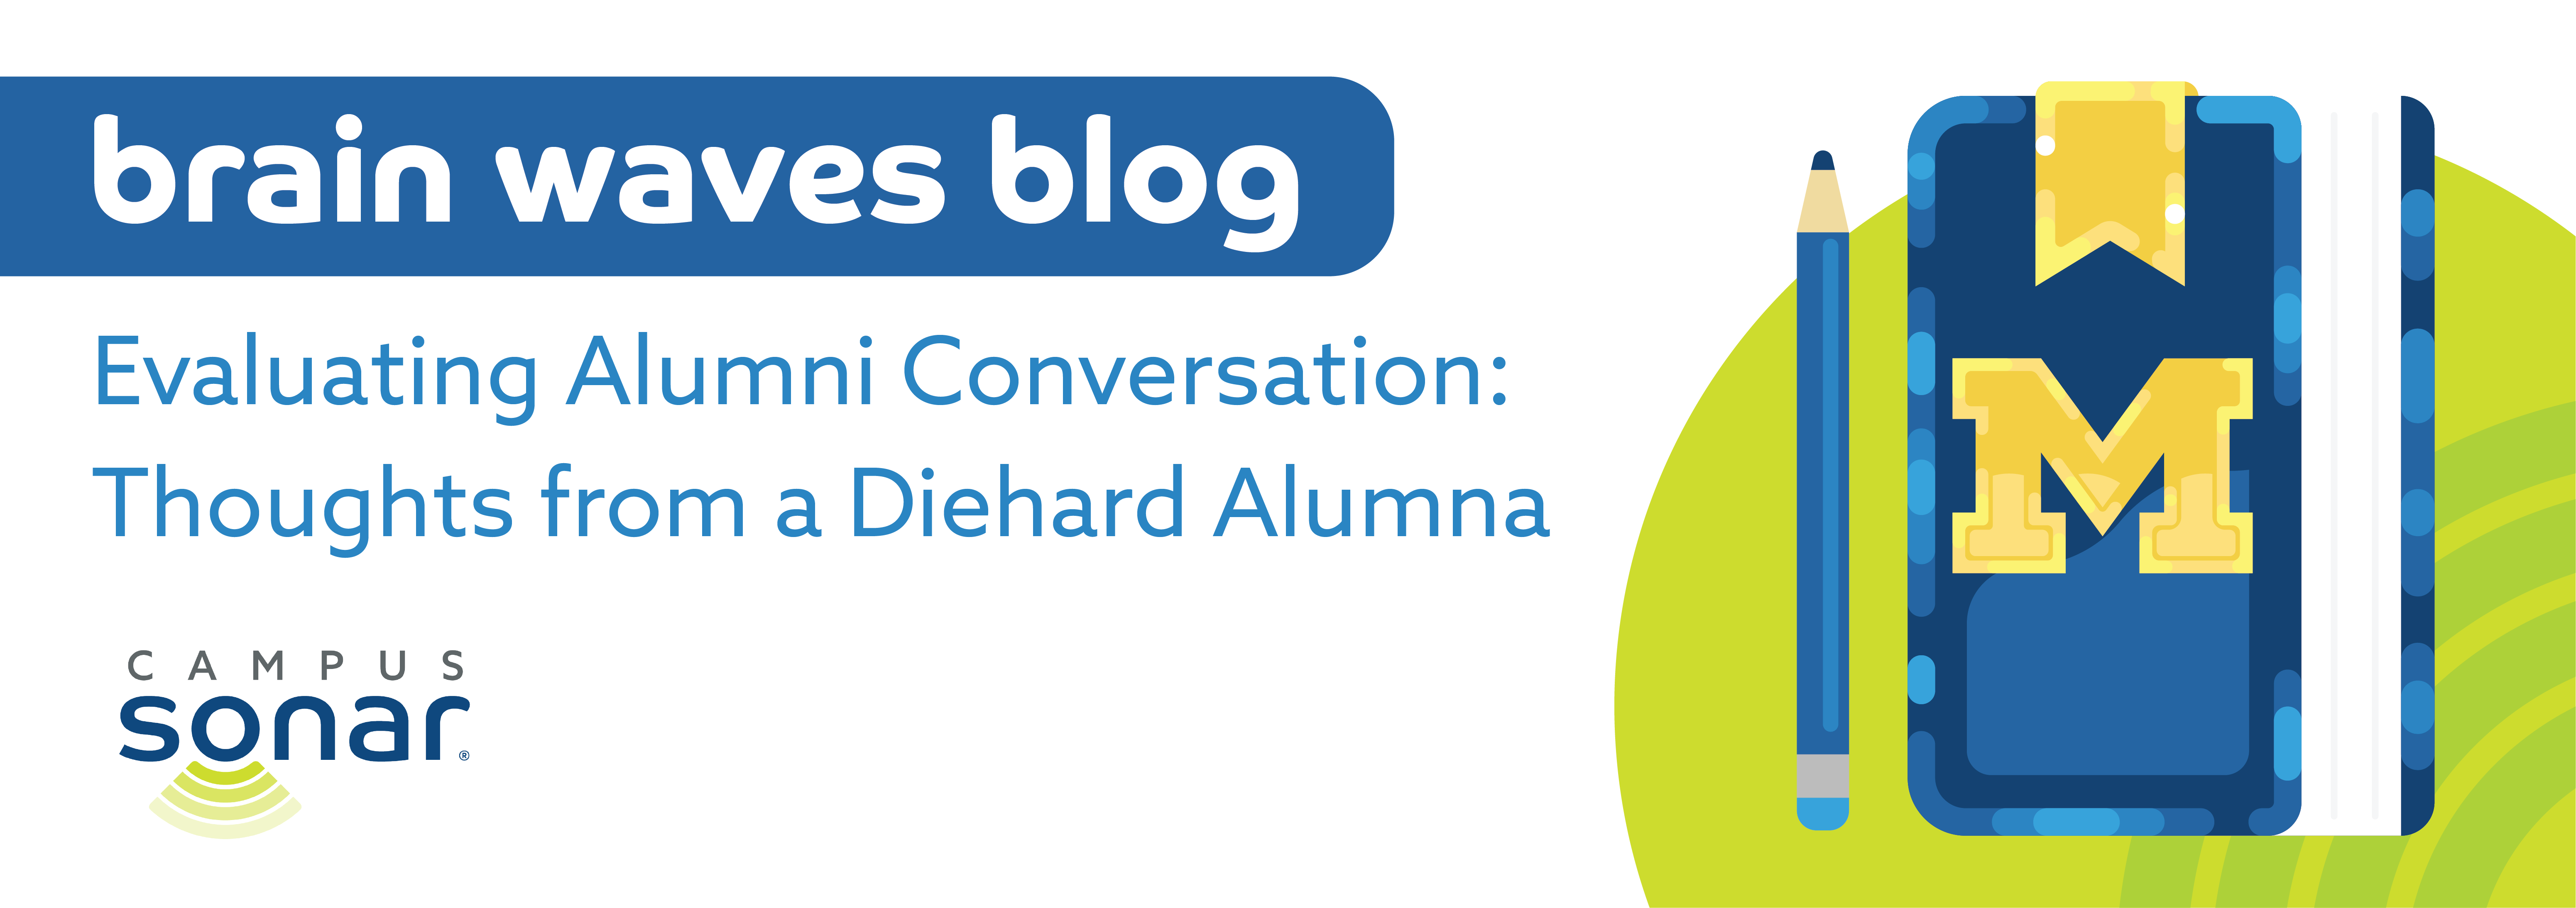 Blog post image for Evaluating Alumni Conversation: Thoughts from a Diehard Alumna